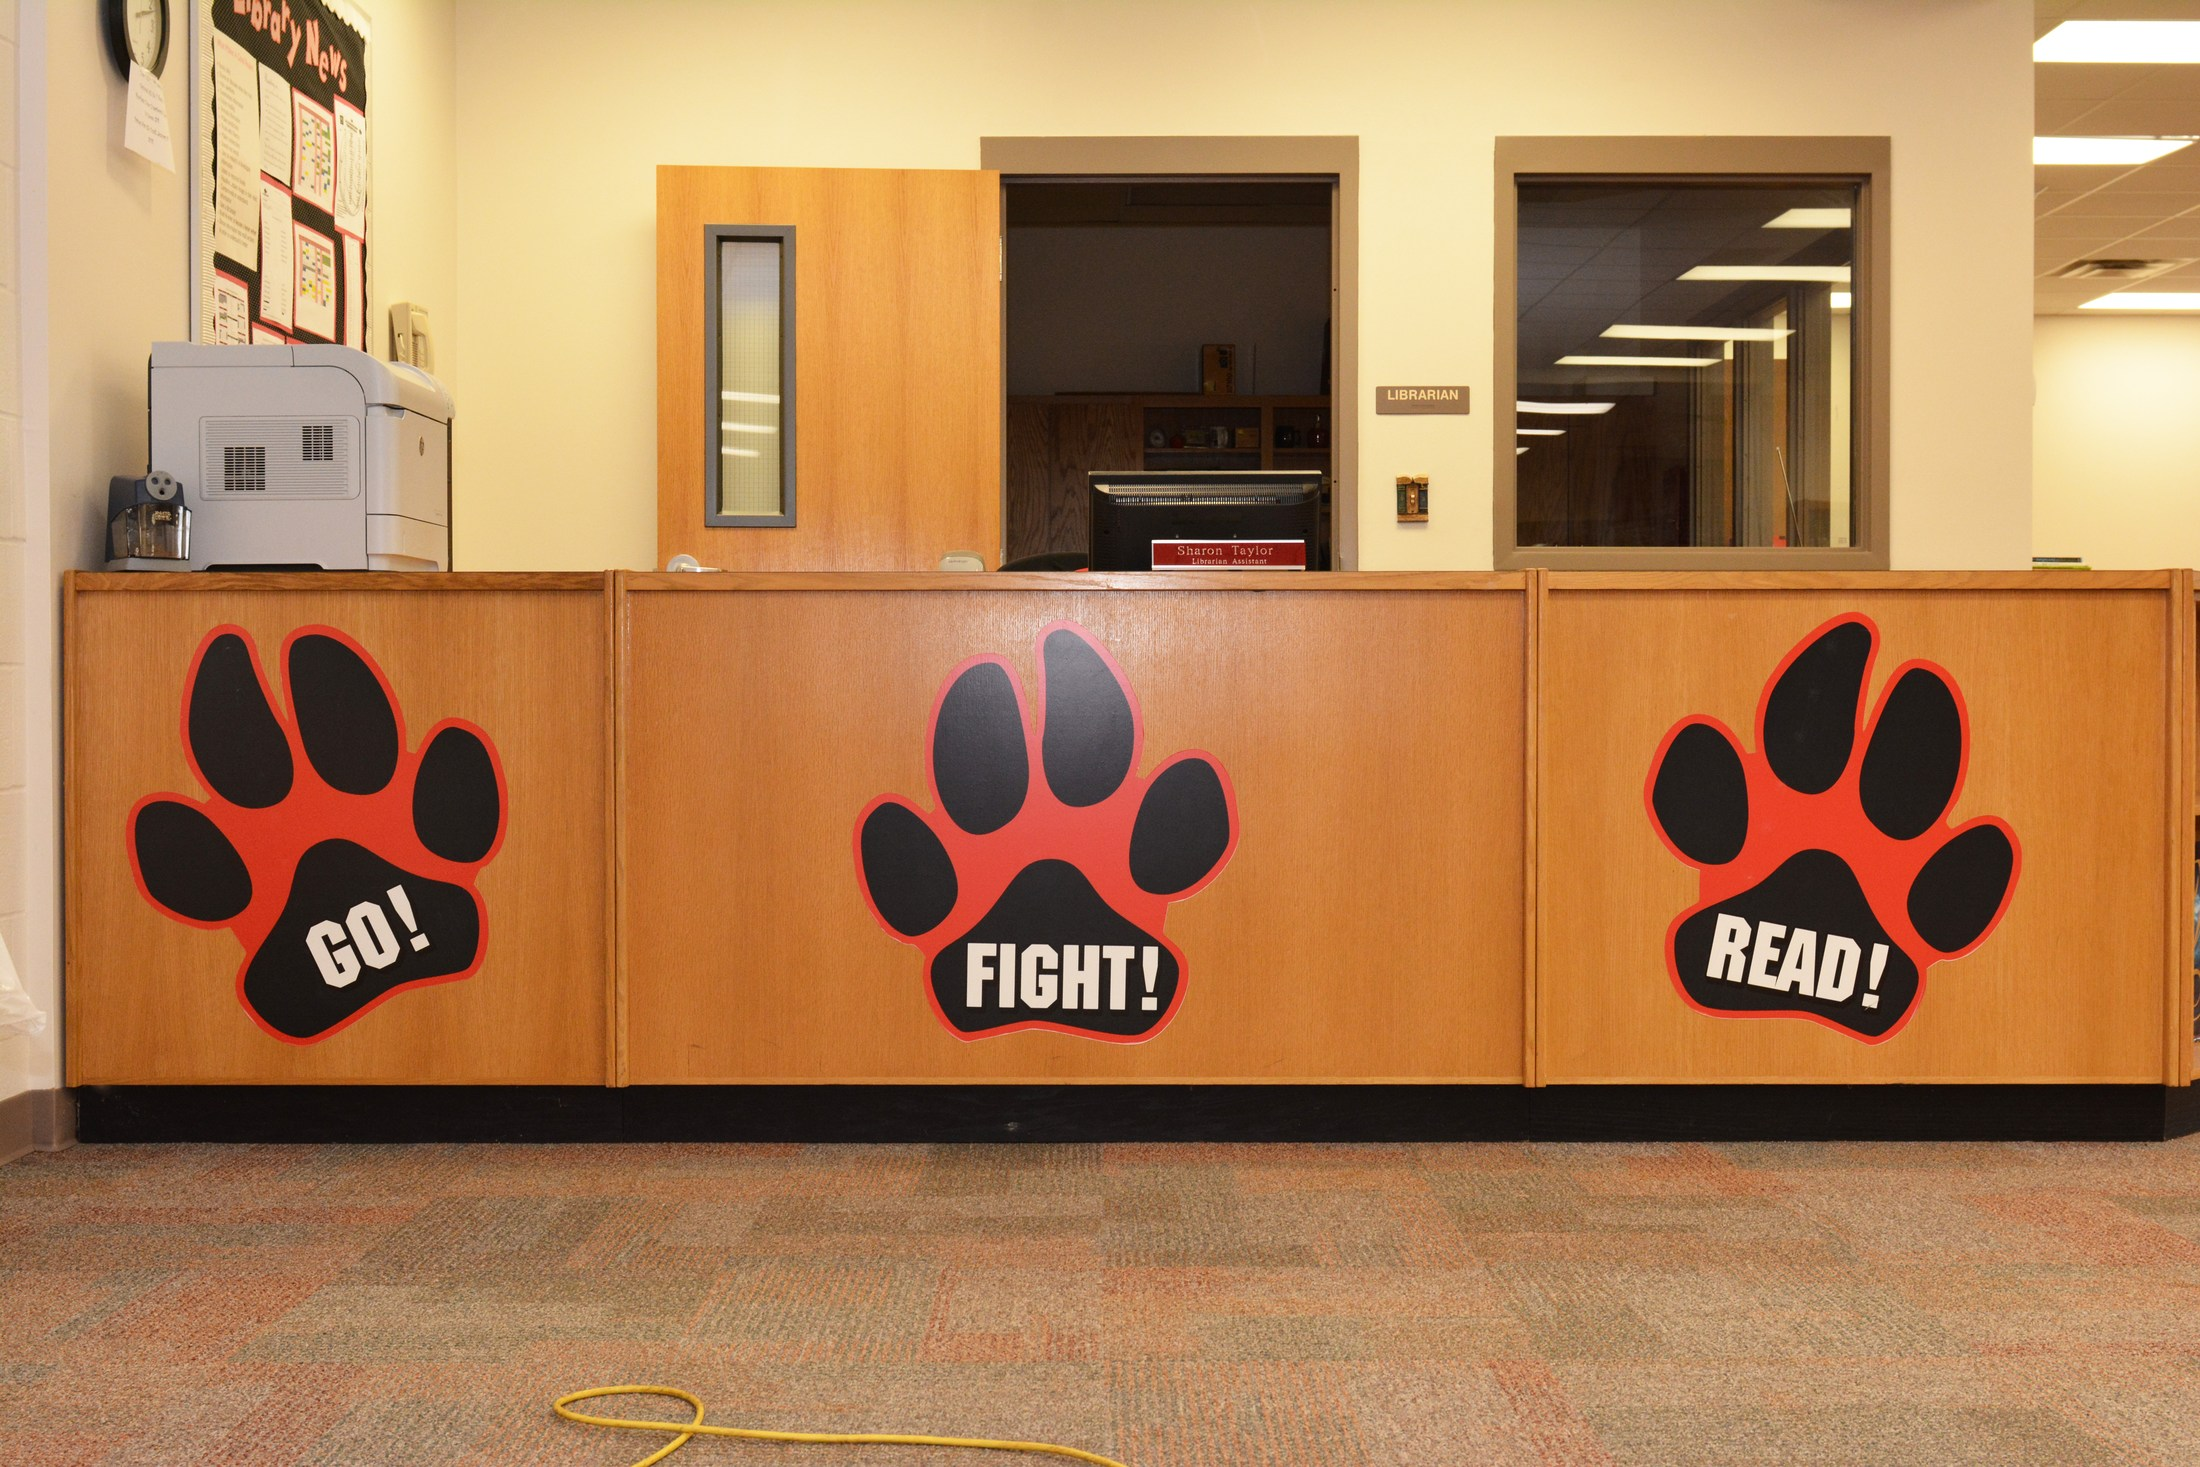 HS library circulation desk with Go! Fight! Read! paw prints.